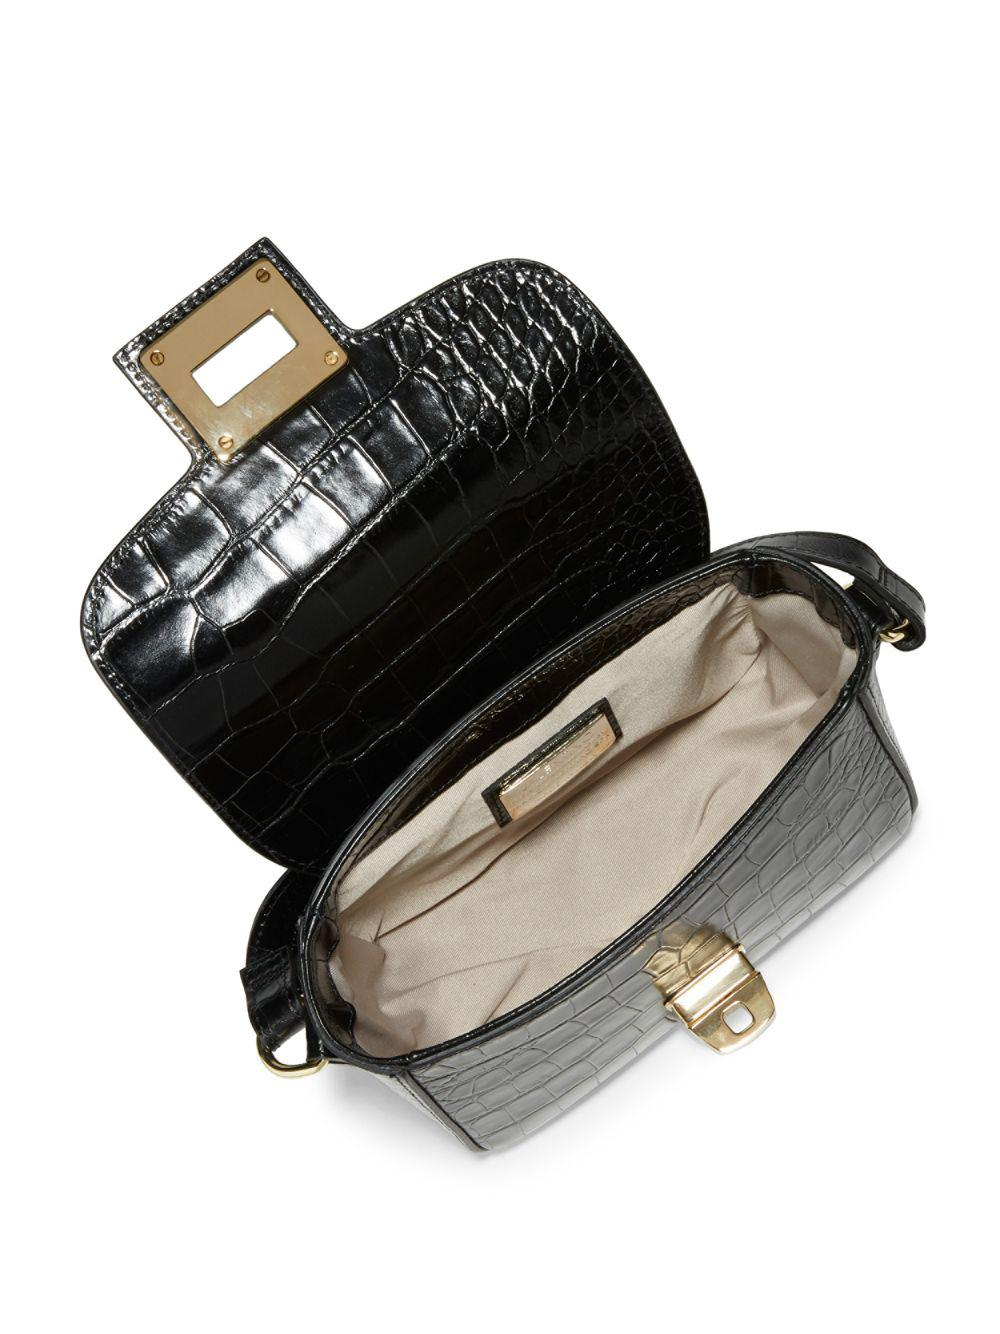 b2b3d48f18 Lyst - Valentino By Mario Valentino Yasmin Croc-embossed Leather Shoulder  Bag in Black